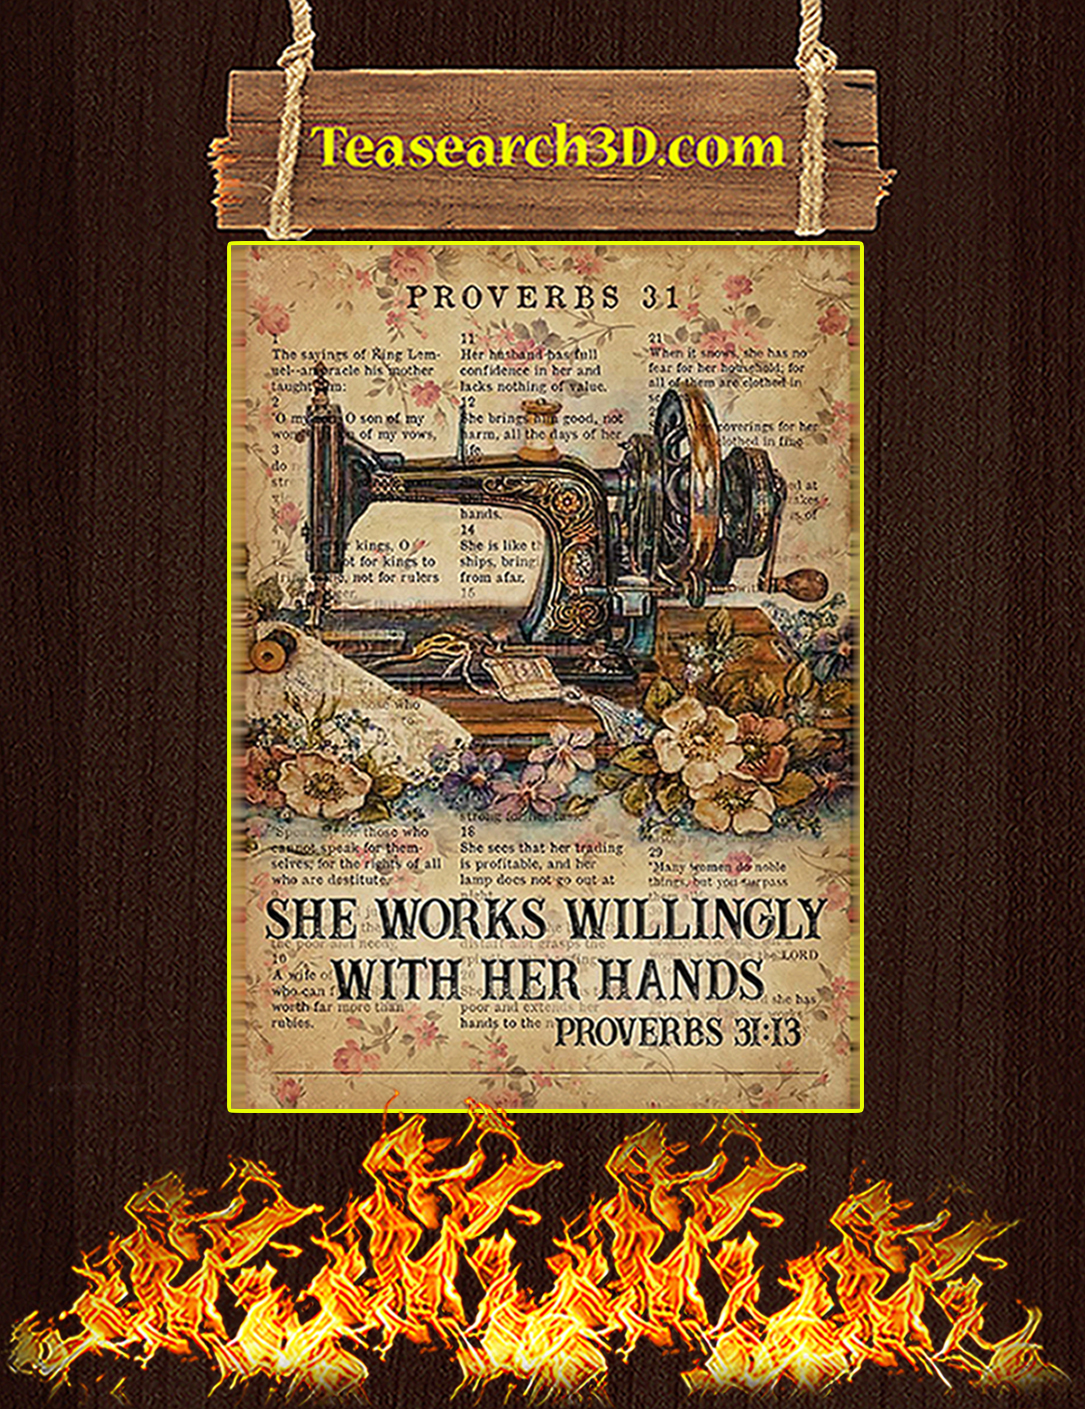 Sewing Proverbs 31 she works willingly with her hands poster A2